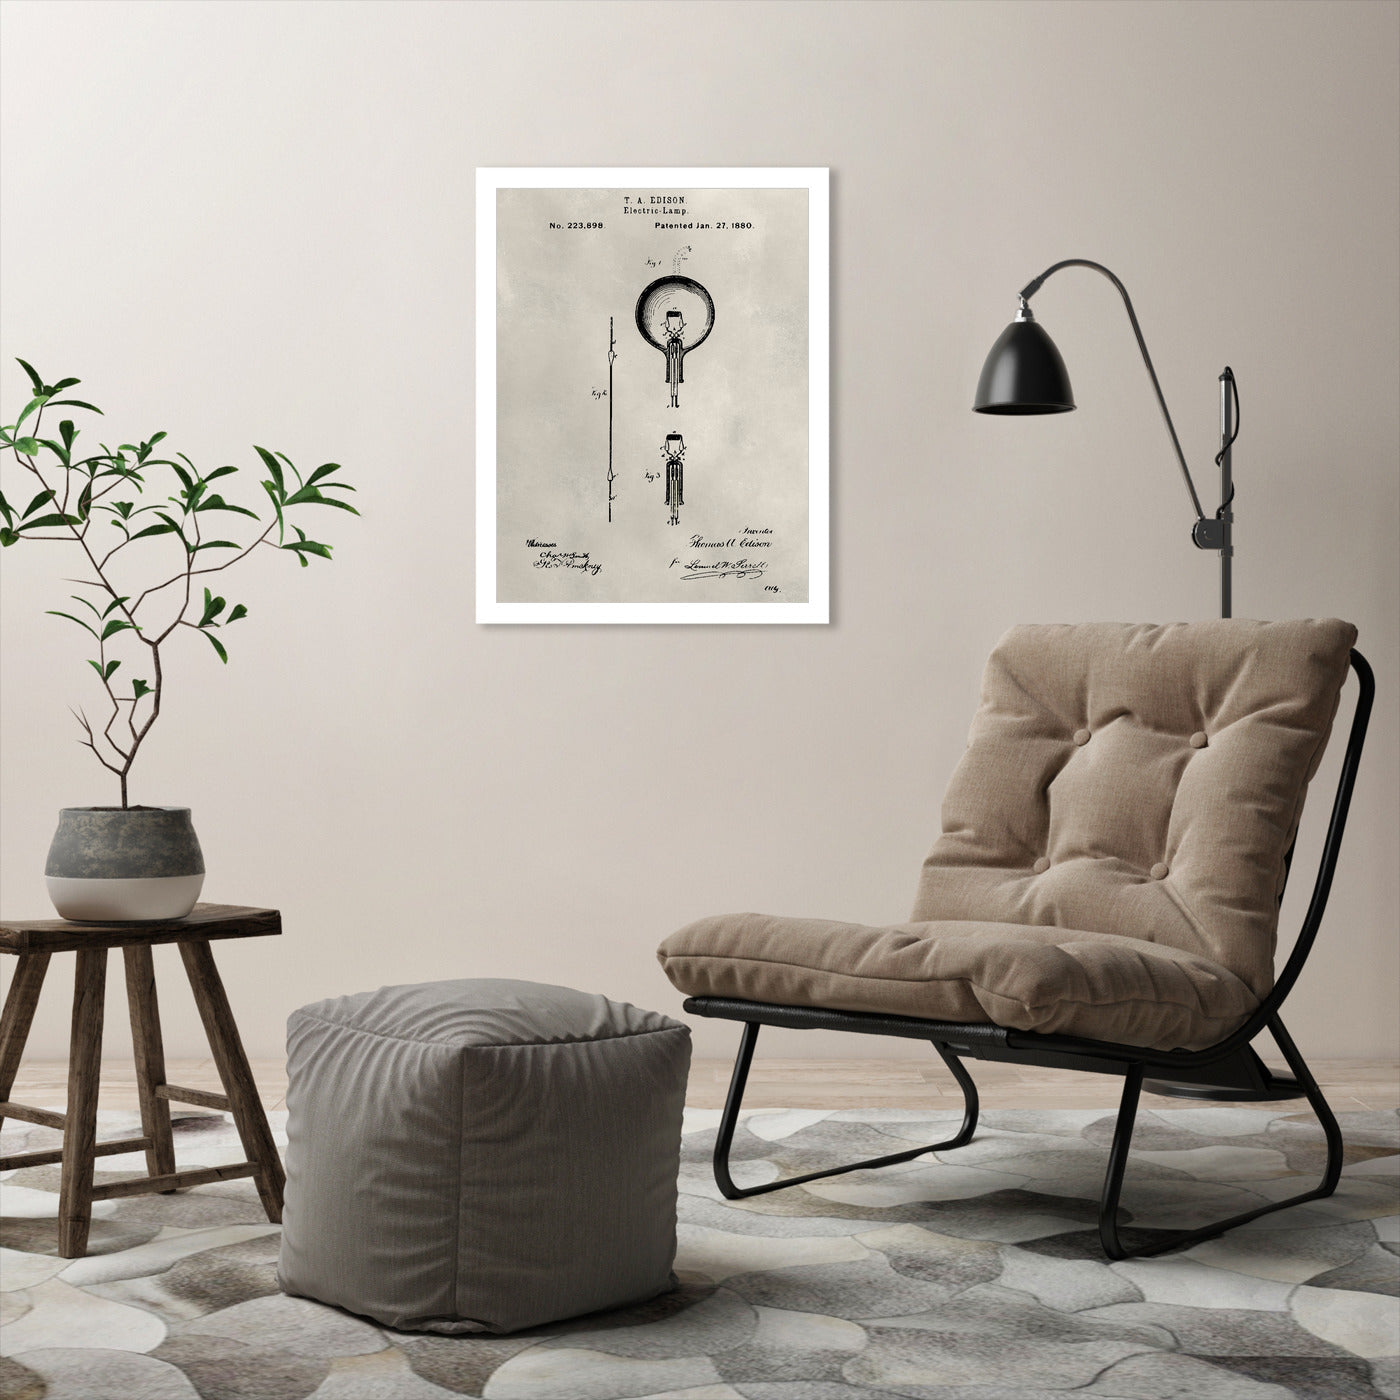 Patent--Light Bulb by Alicia Ludwig by World Art Group - White Framed Print - Wall Art - Americanflat